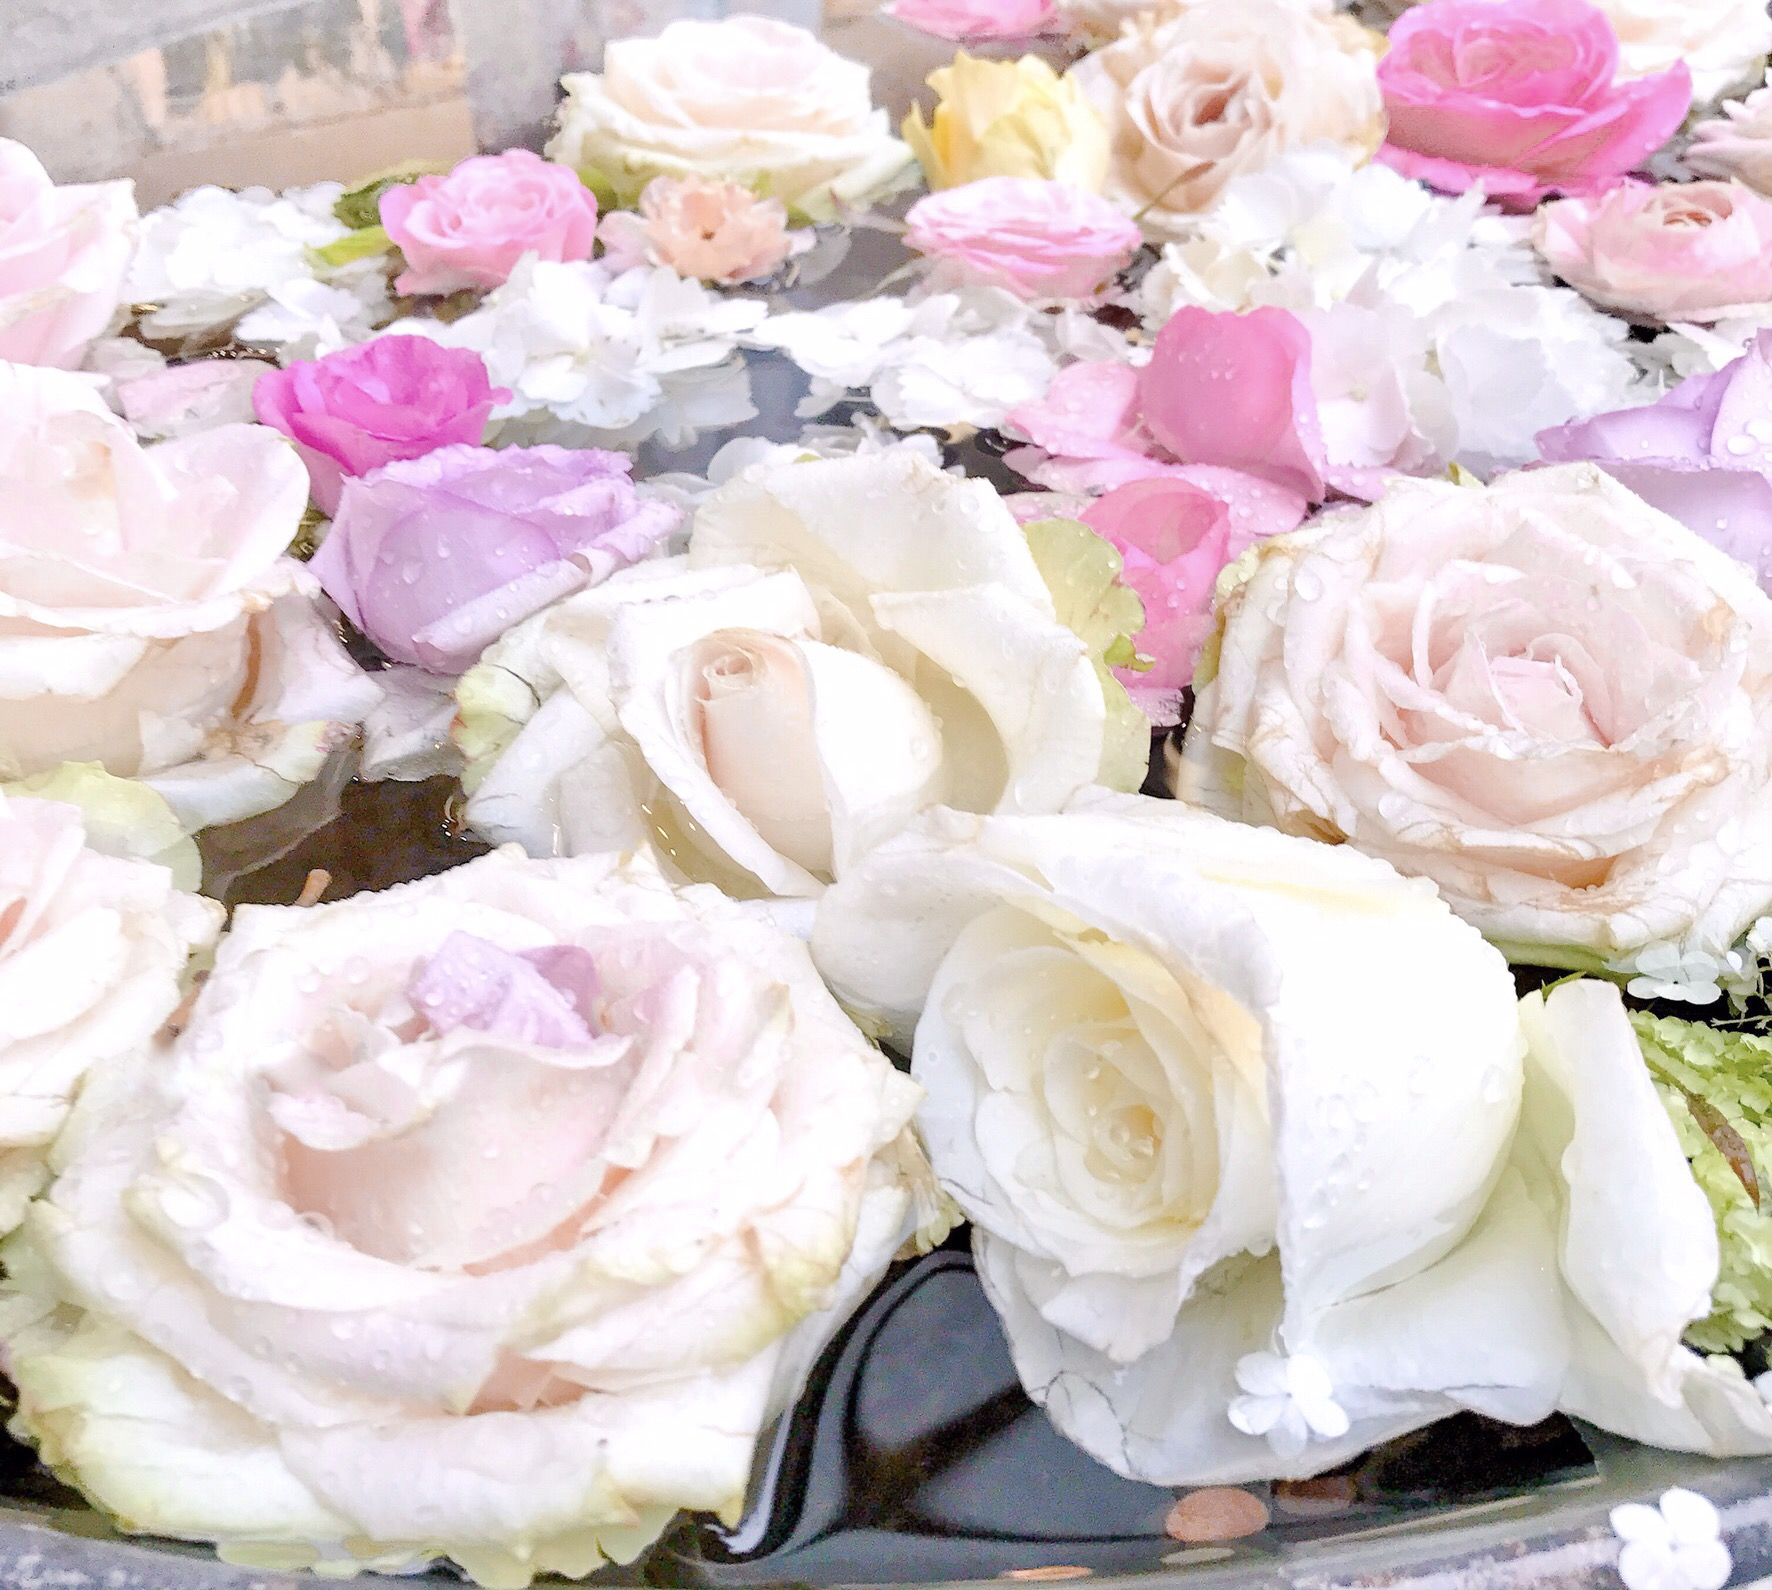 12 Cute Ways To Fall In Love With February, Raindrops On Roses | Love Catherine